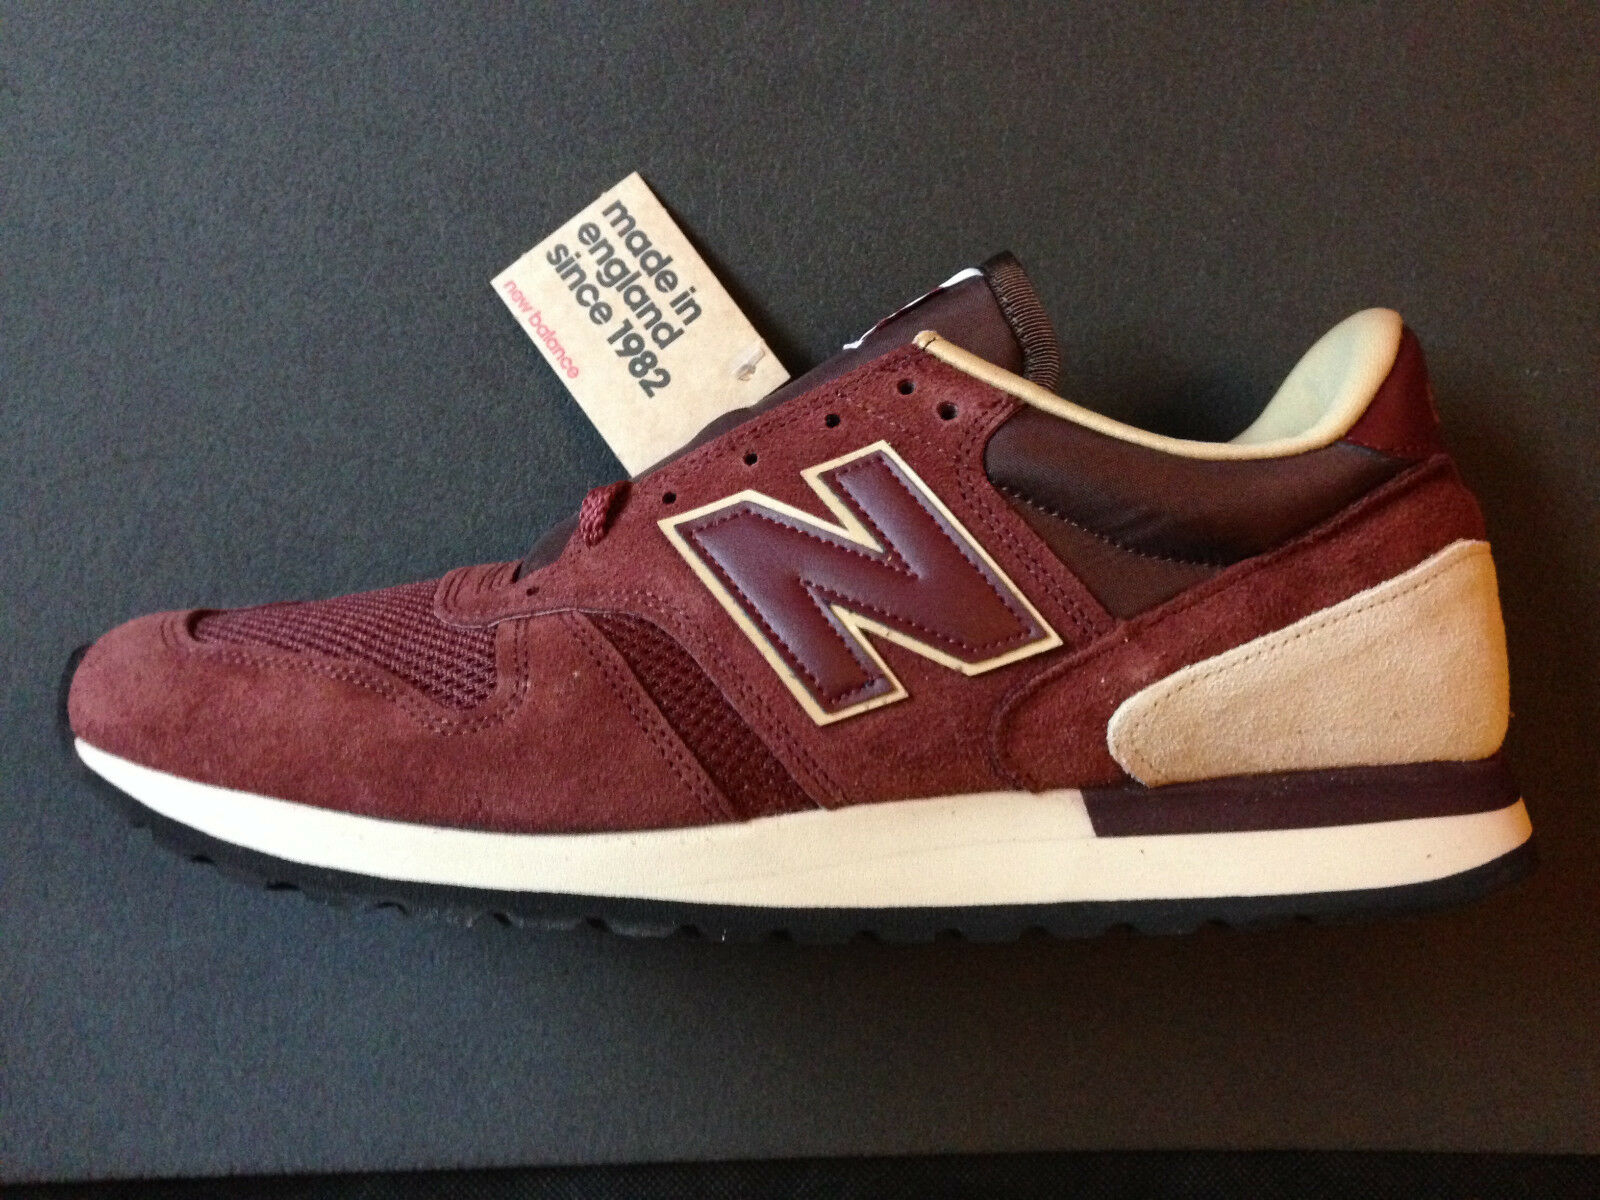 New balance m770rbb 770 made in uk vintage colourway new US 12 UK 11,5 UE 46,5